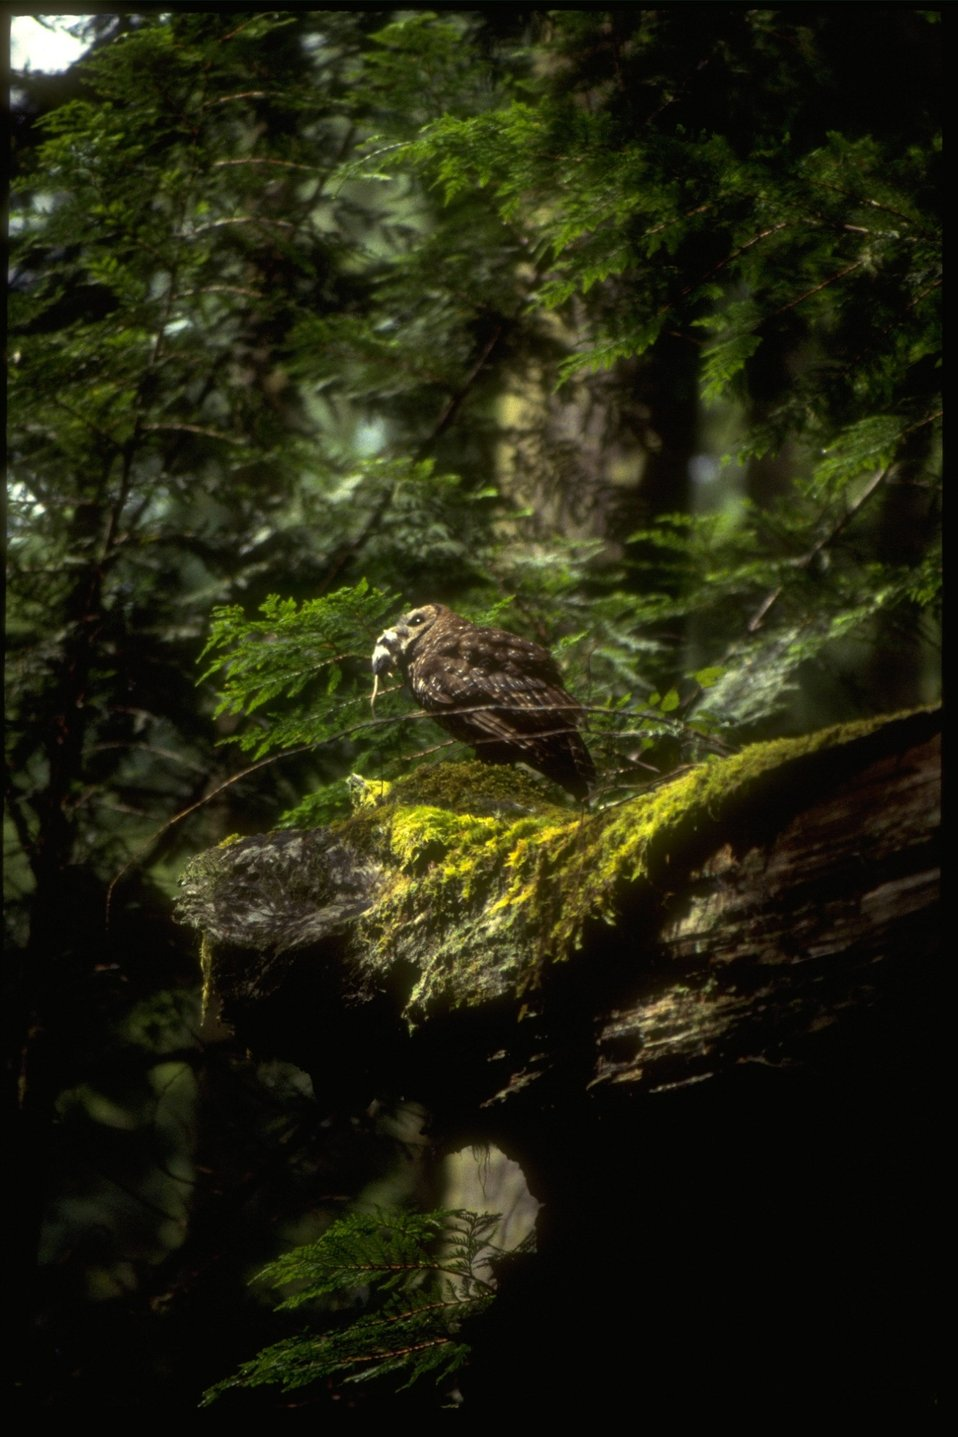 Northern Spotted Owl with a mouse.